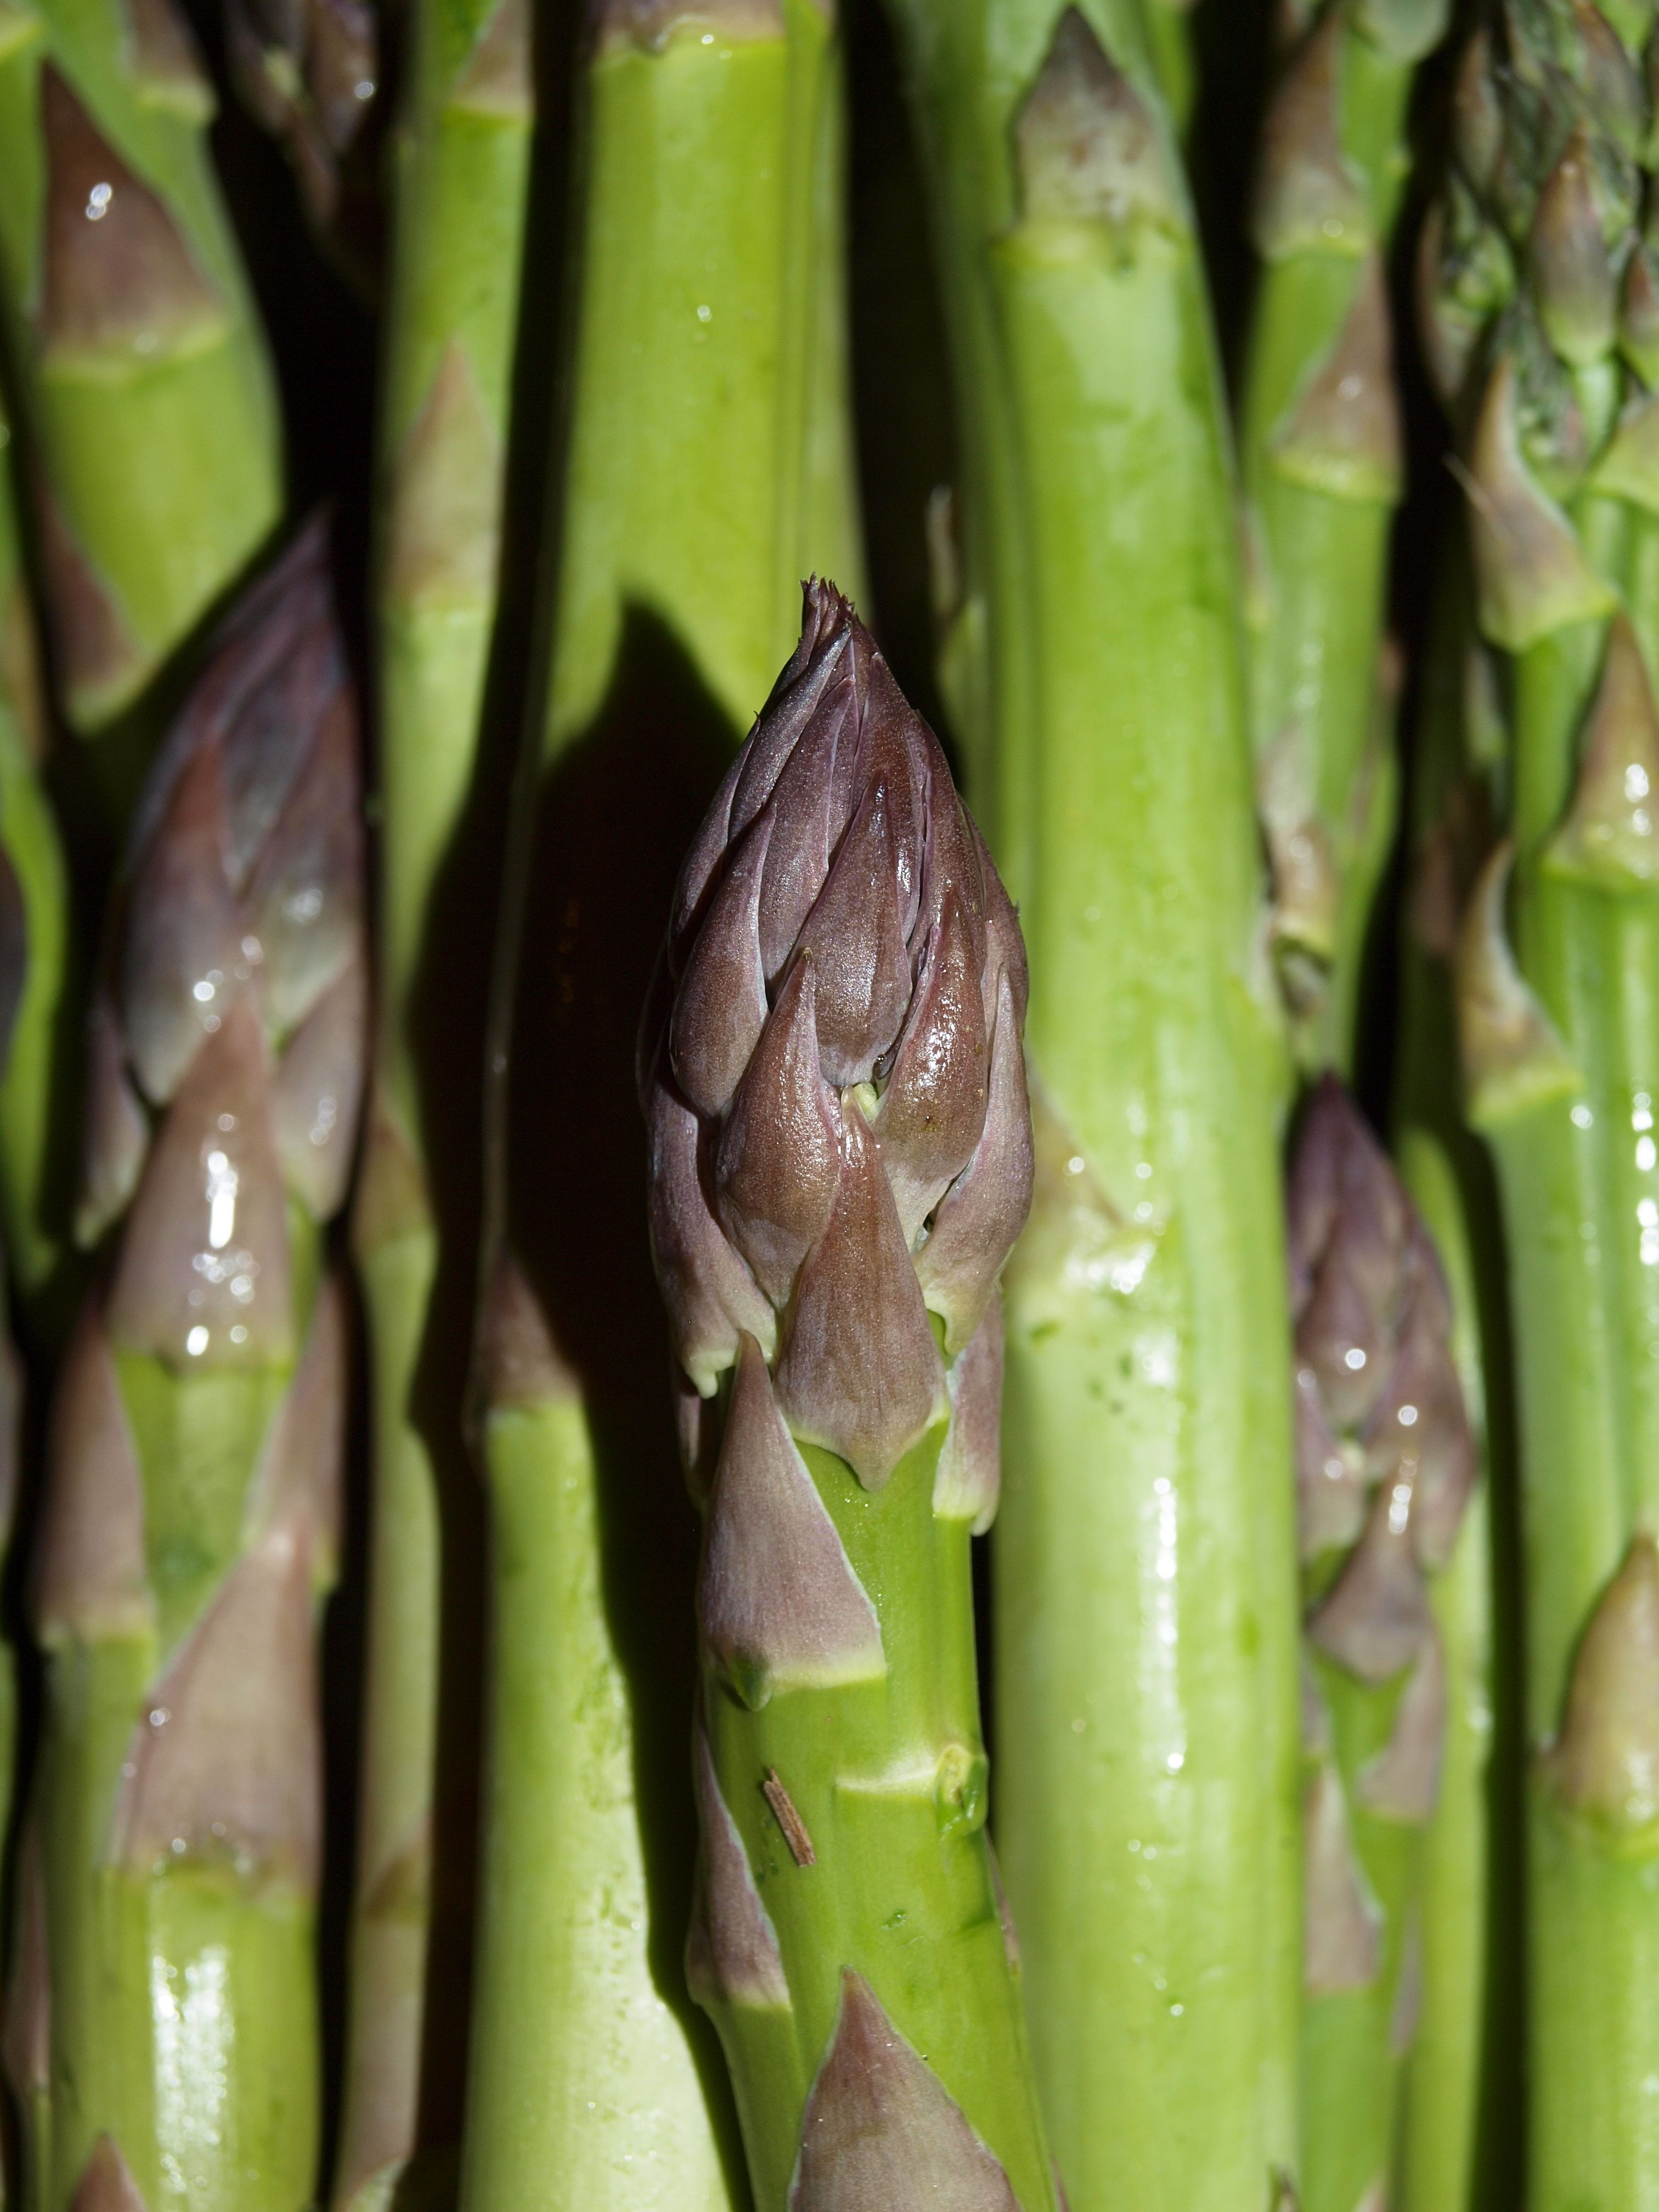 Asparagus tips, harvested and ready to eat. This crop is